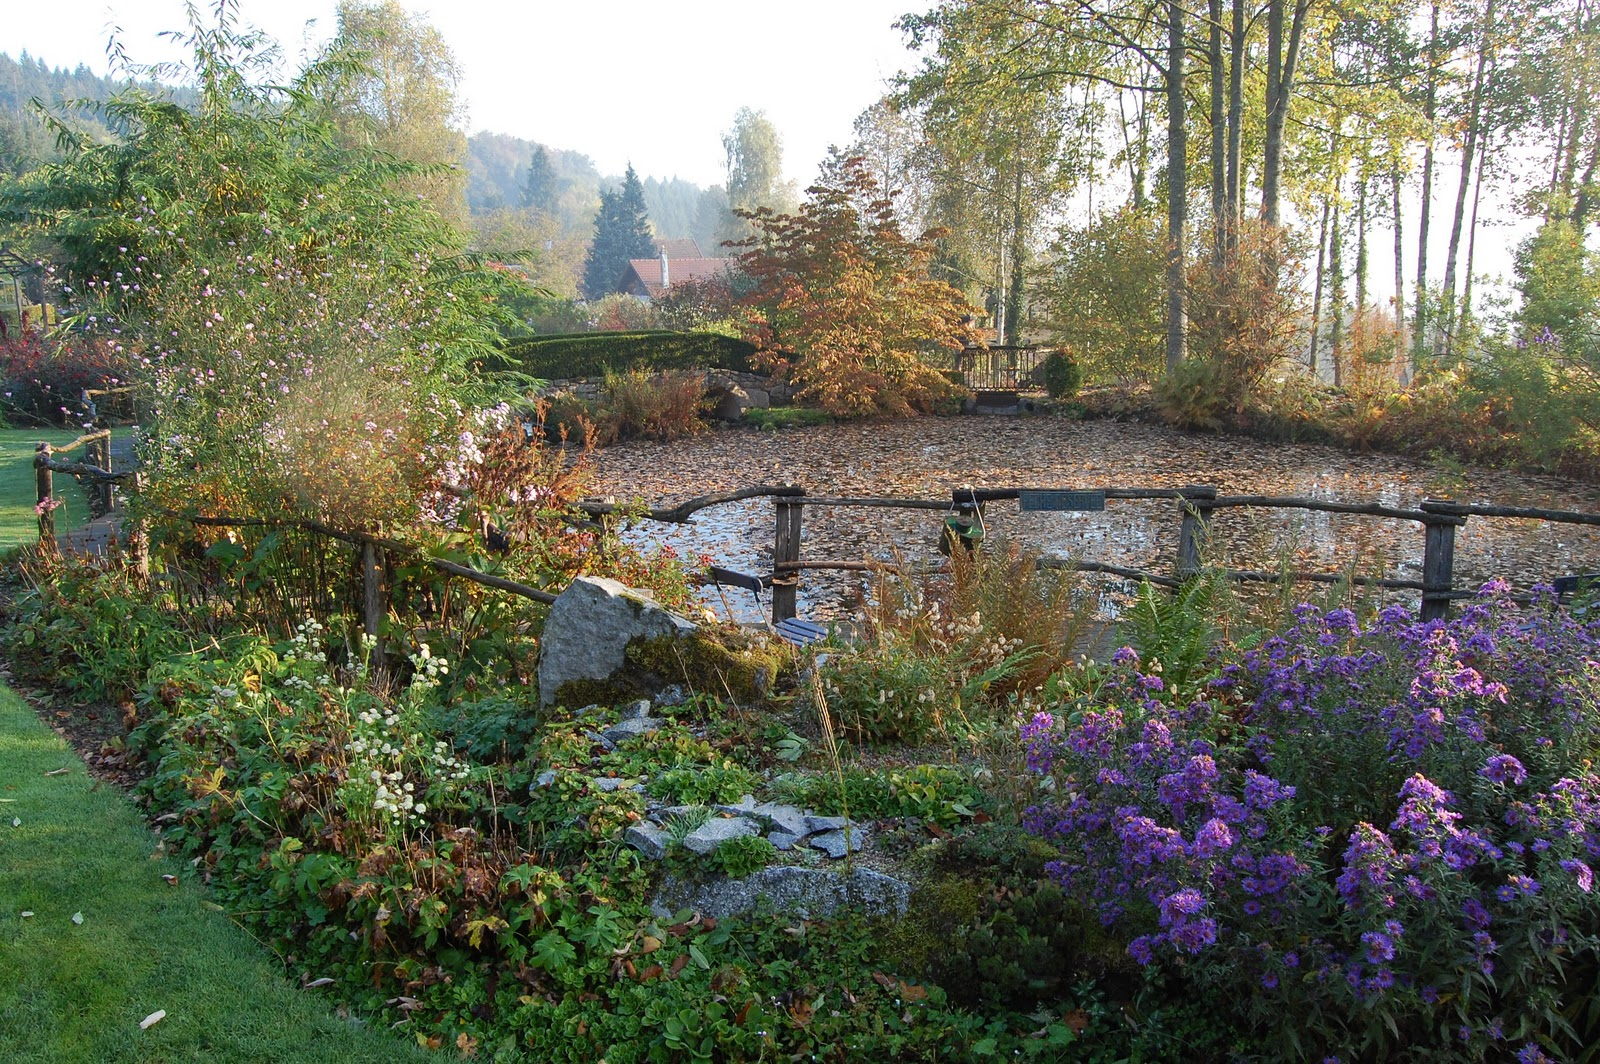 Most Beautiful Gardens - Is this the most beautiful garden ever travels in mitteleuropa part5